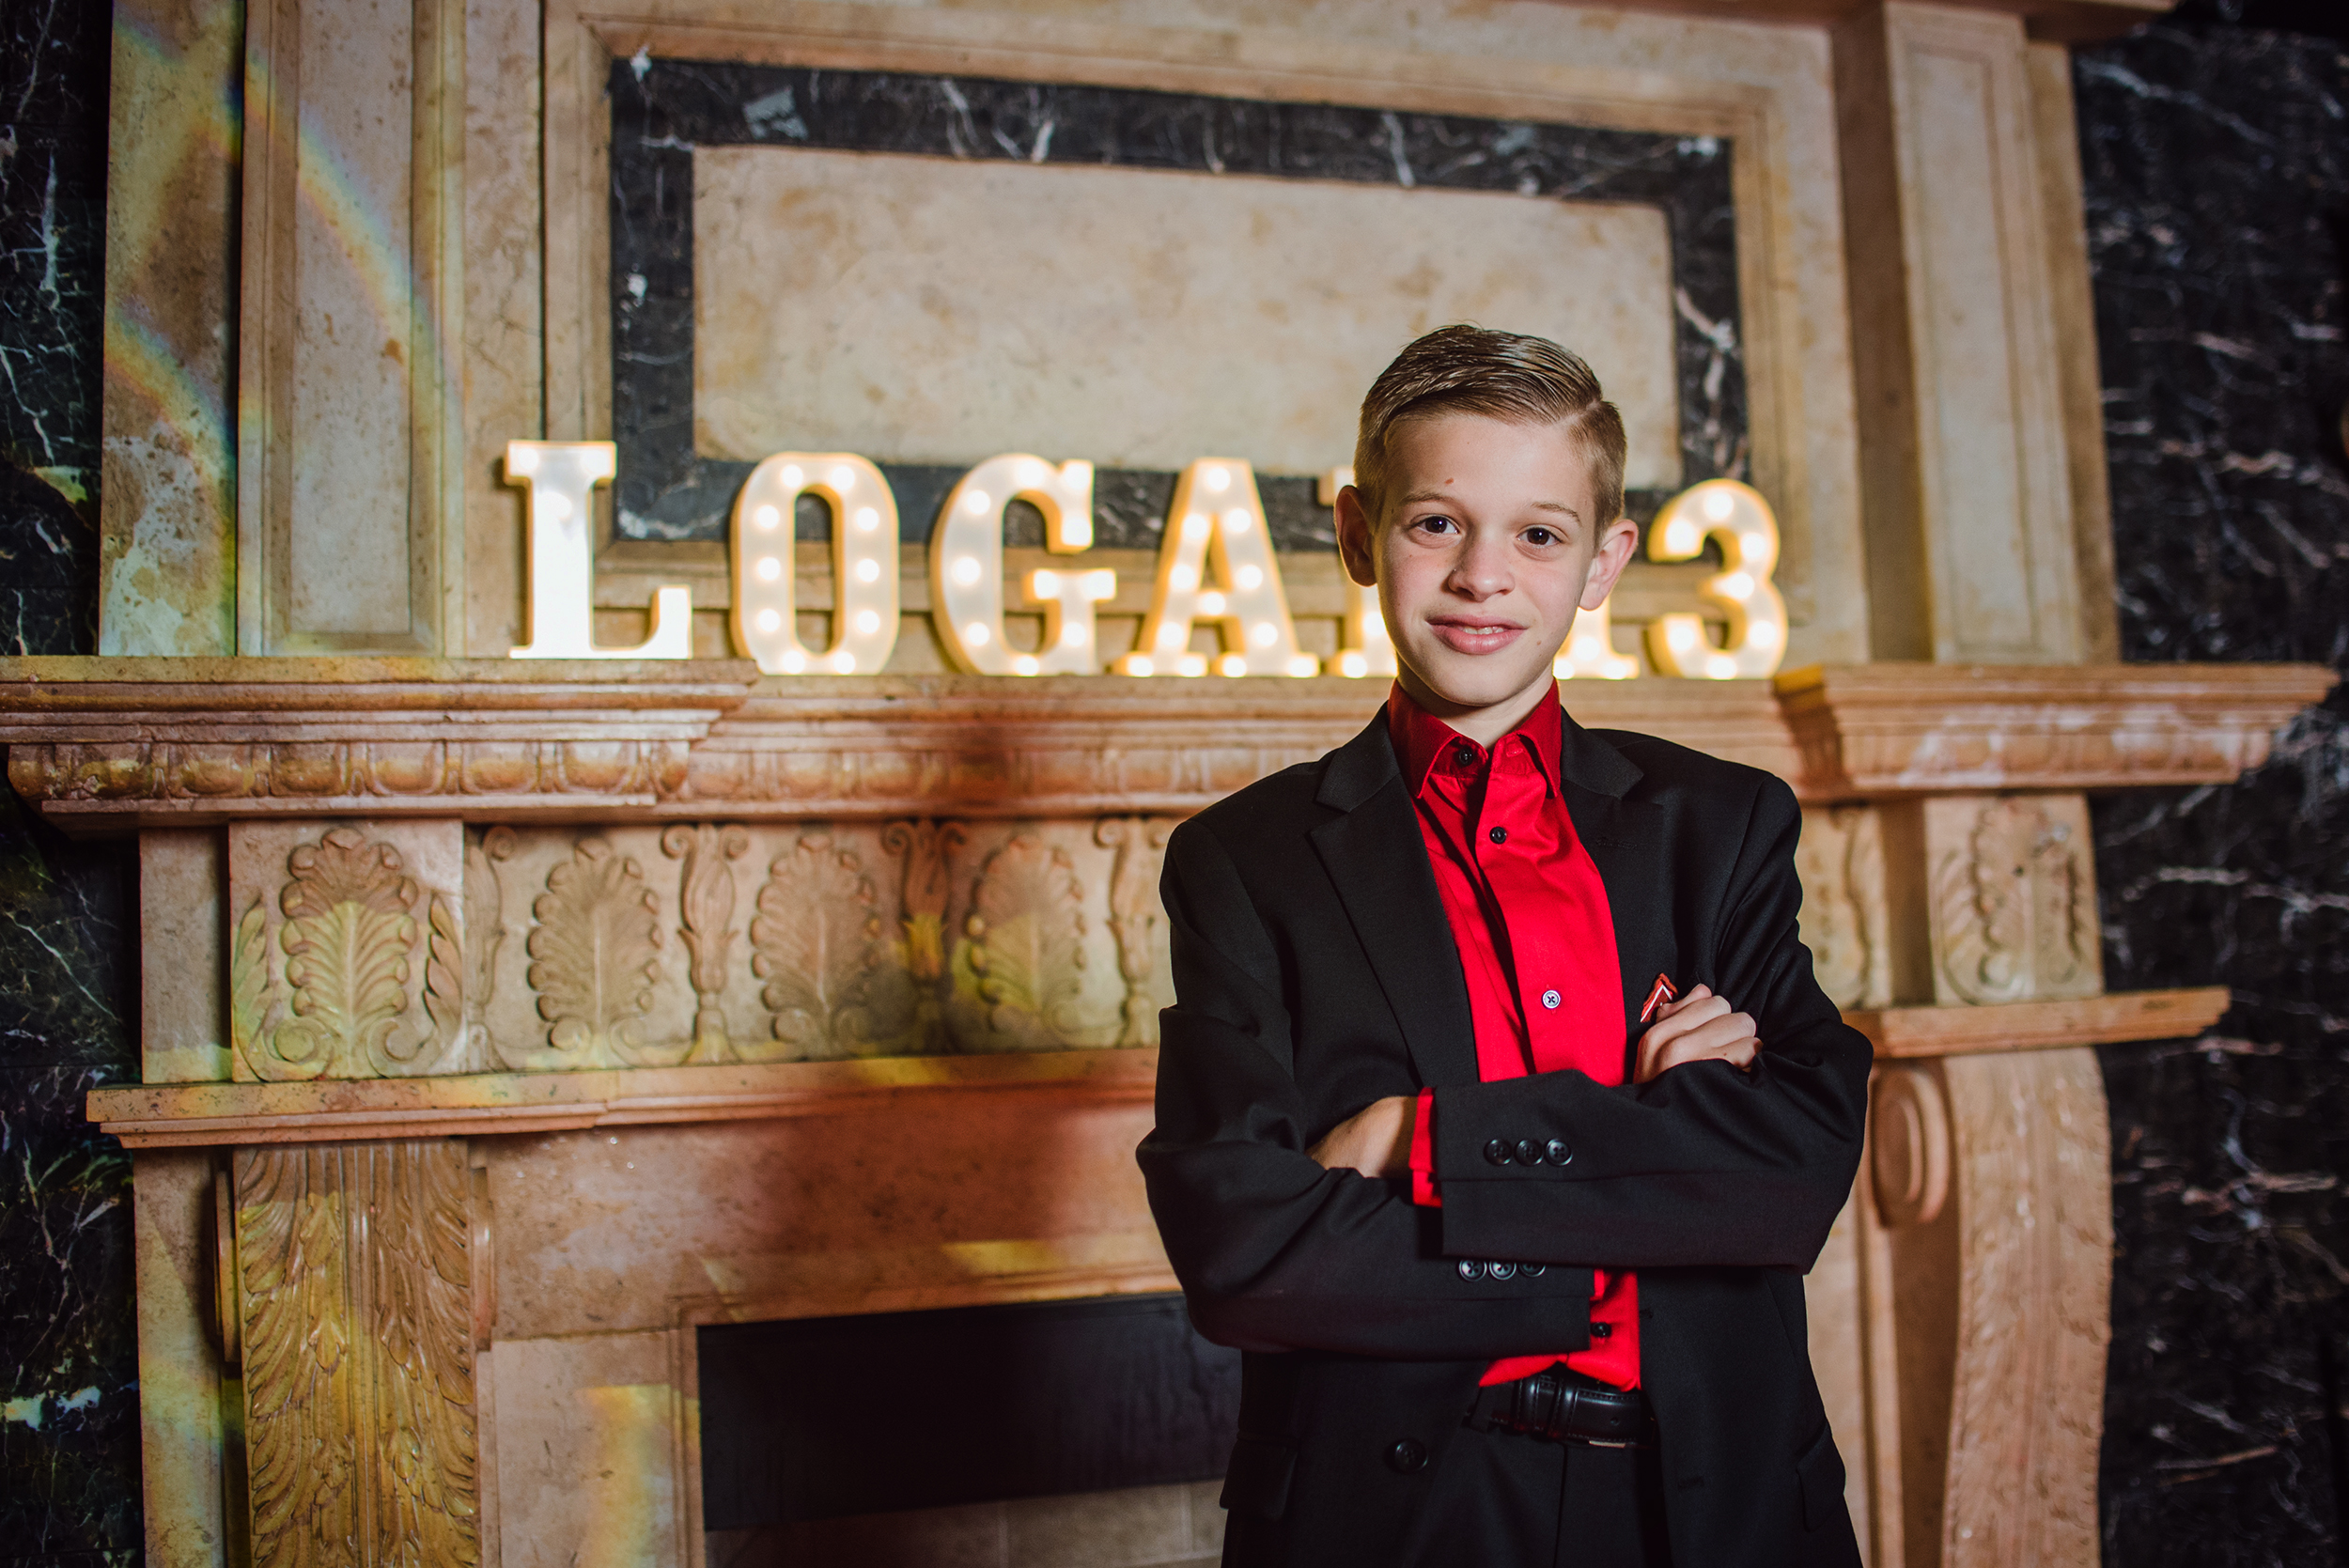 Mazel Tov Logan! - We had such an amazing time hosting Logan and his family and friends for his Bar Mitzvah!Special thanks to all of our partners for working with us to create such a special day for Logan's family & friends!